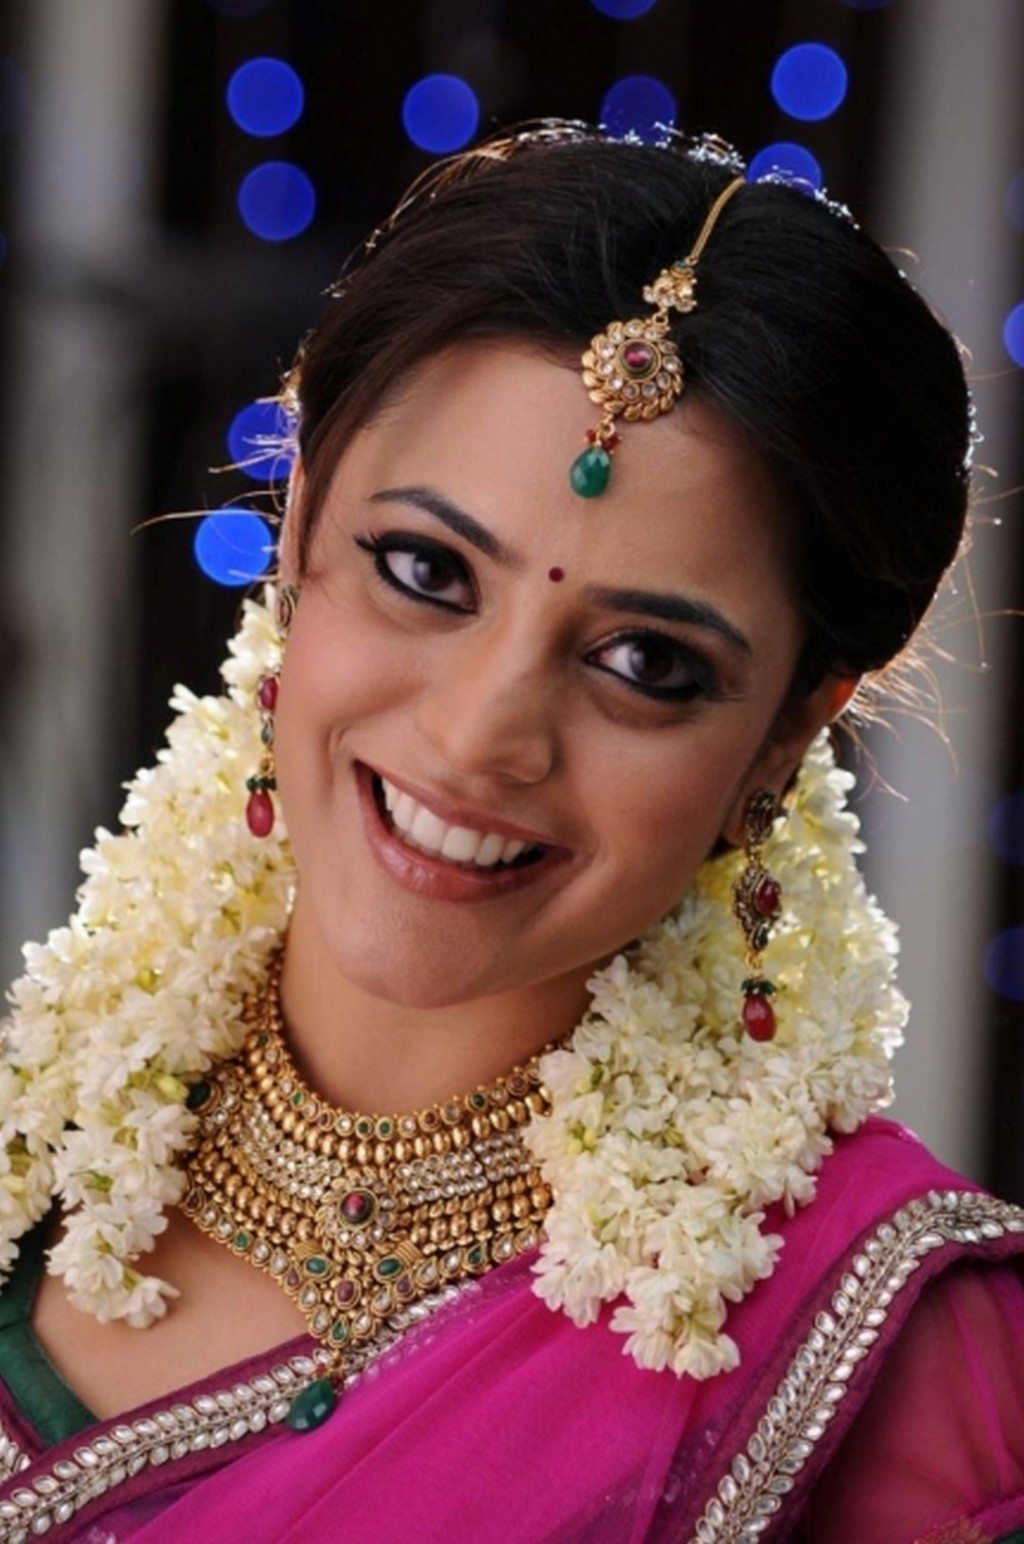 Nisha Agarwal smile, Nisha Agarwal lovely photos, Nisha Agarwal sweet photos